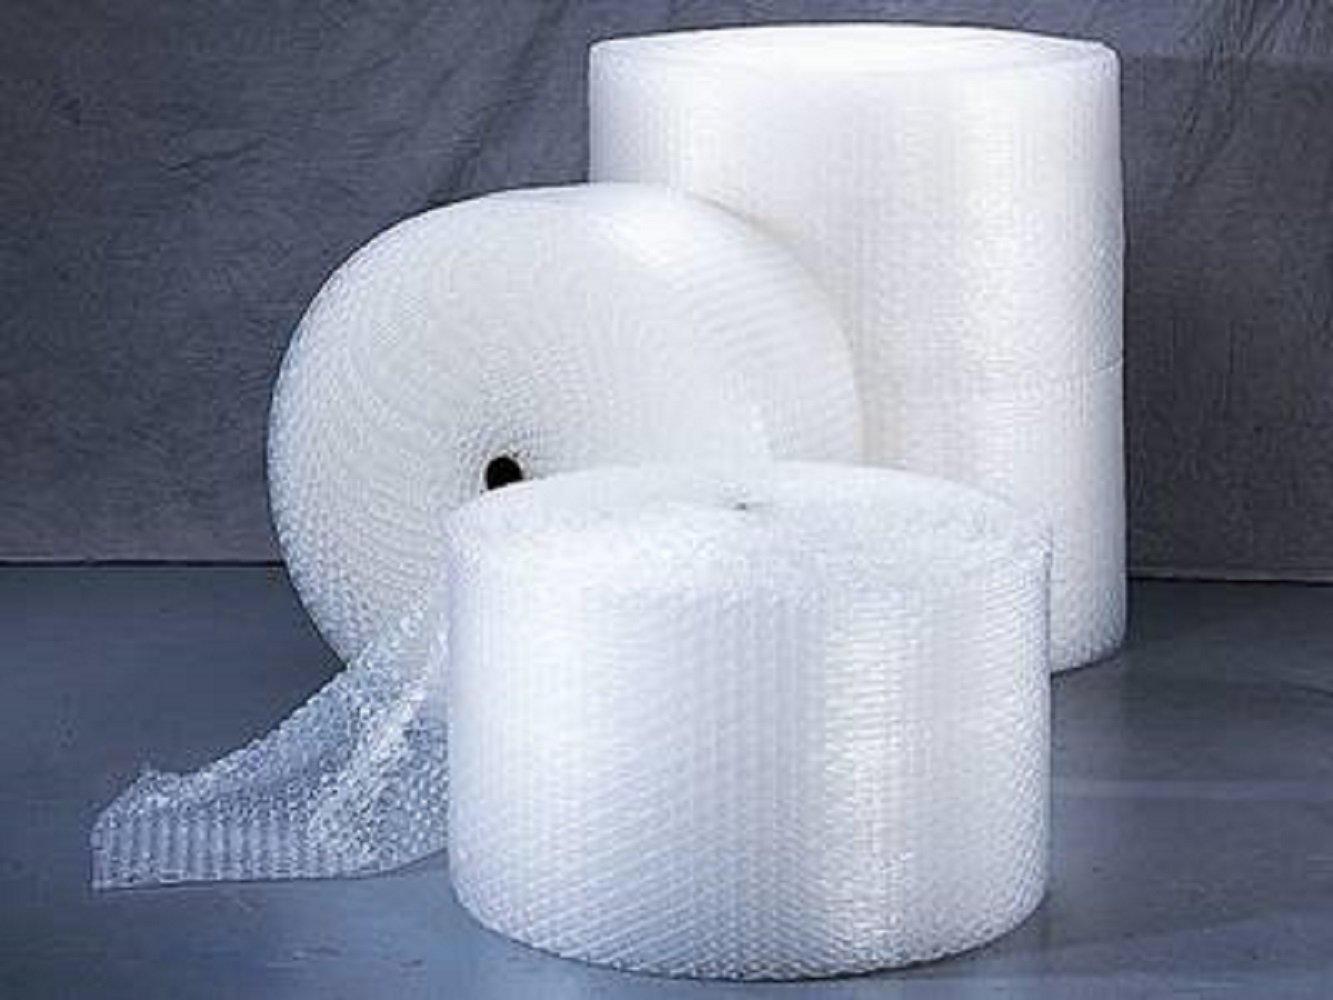 YensPackage Small Bubble Cushioning Wrap 350 ft 3/16'', 2 rolls per pack x 175 each, Total of 350